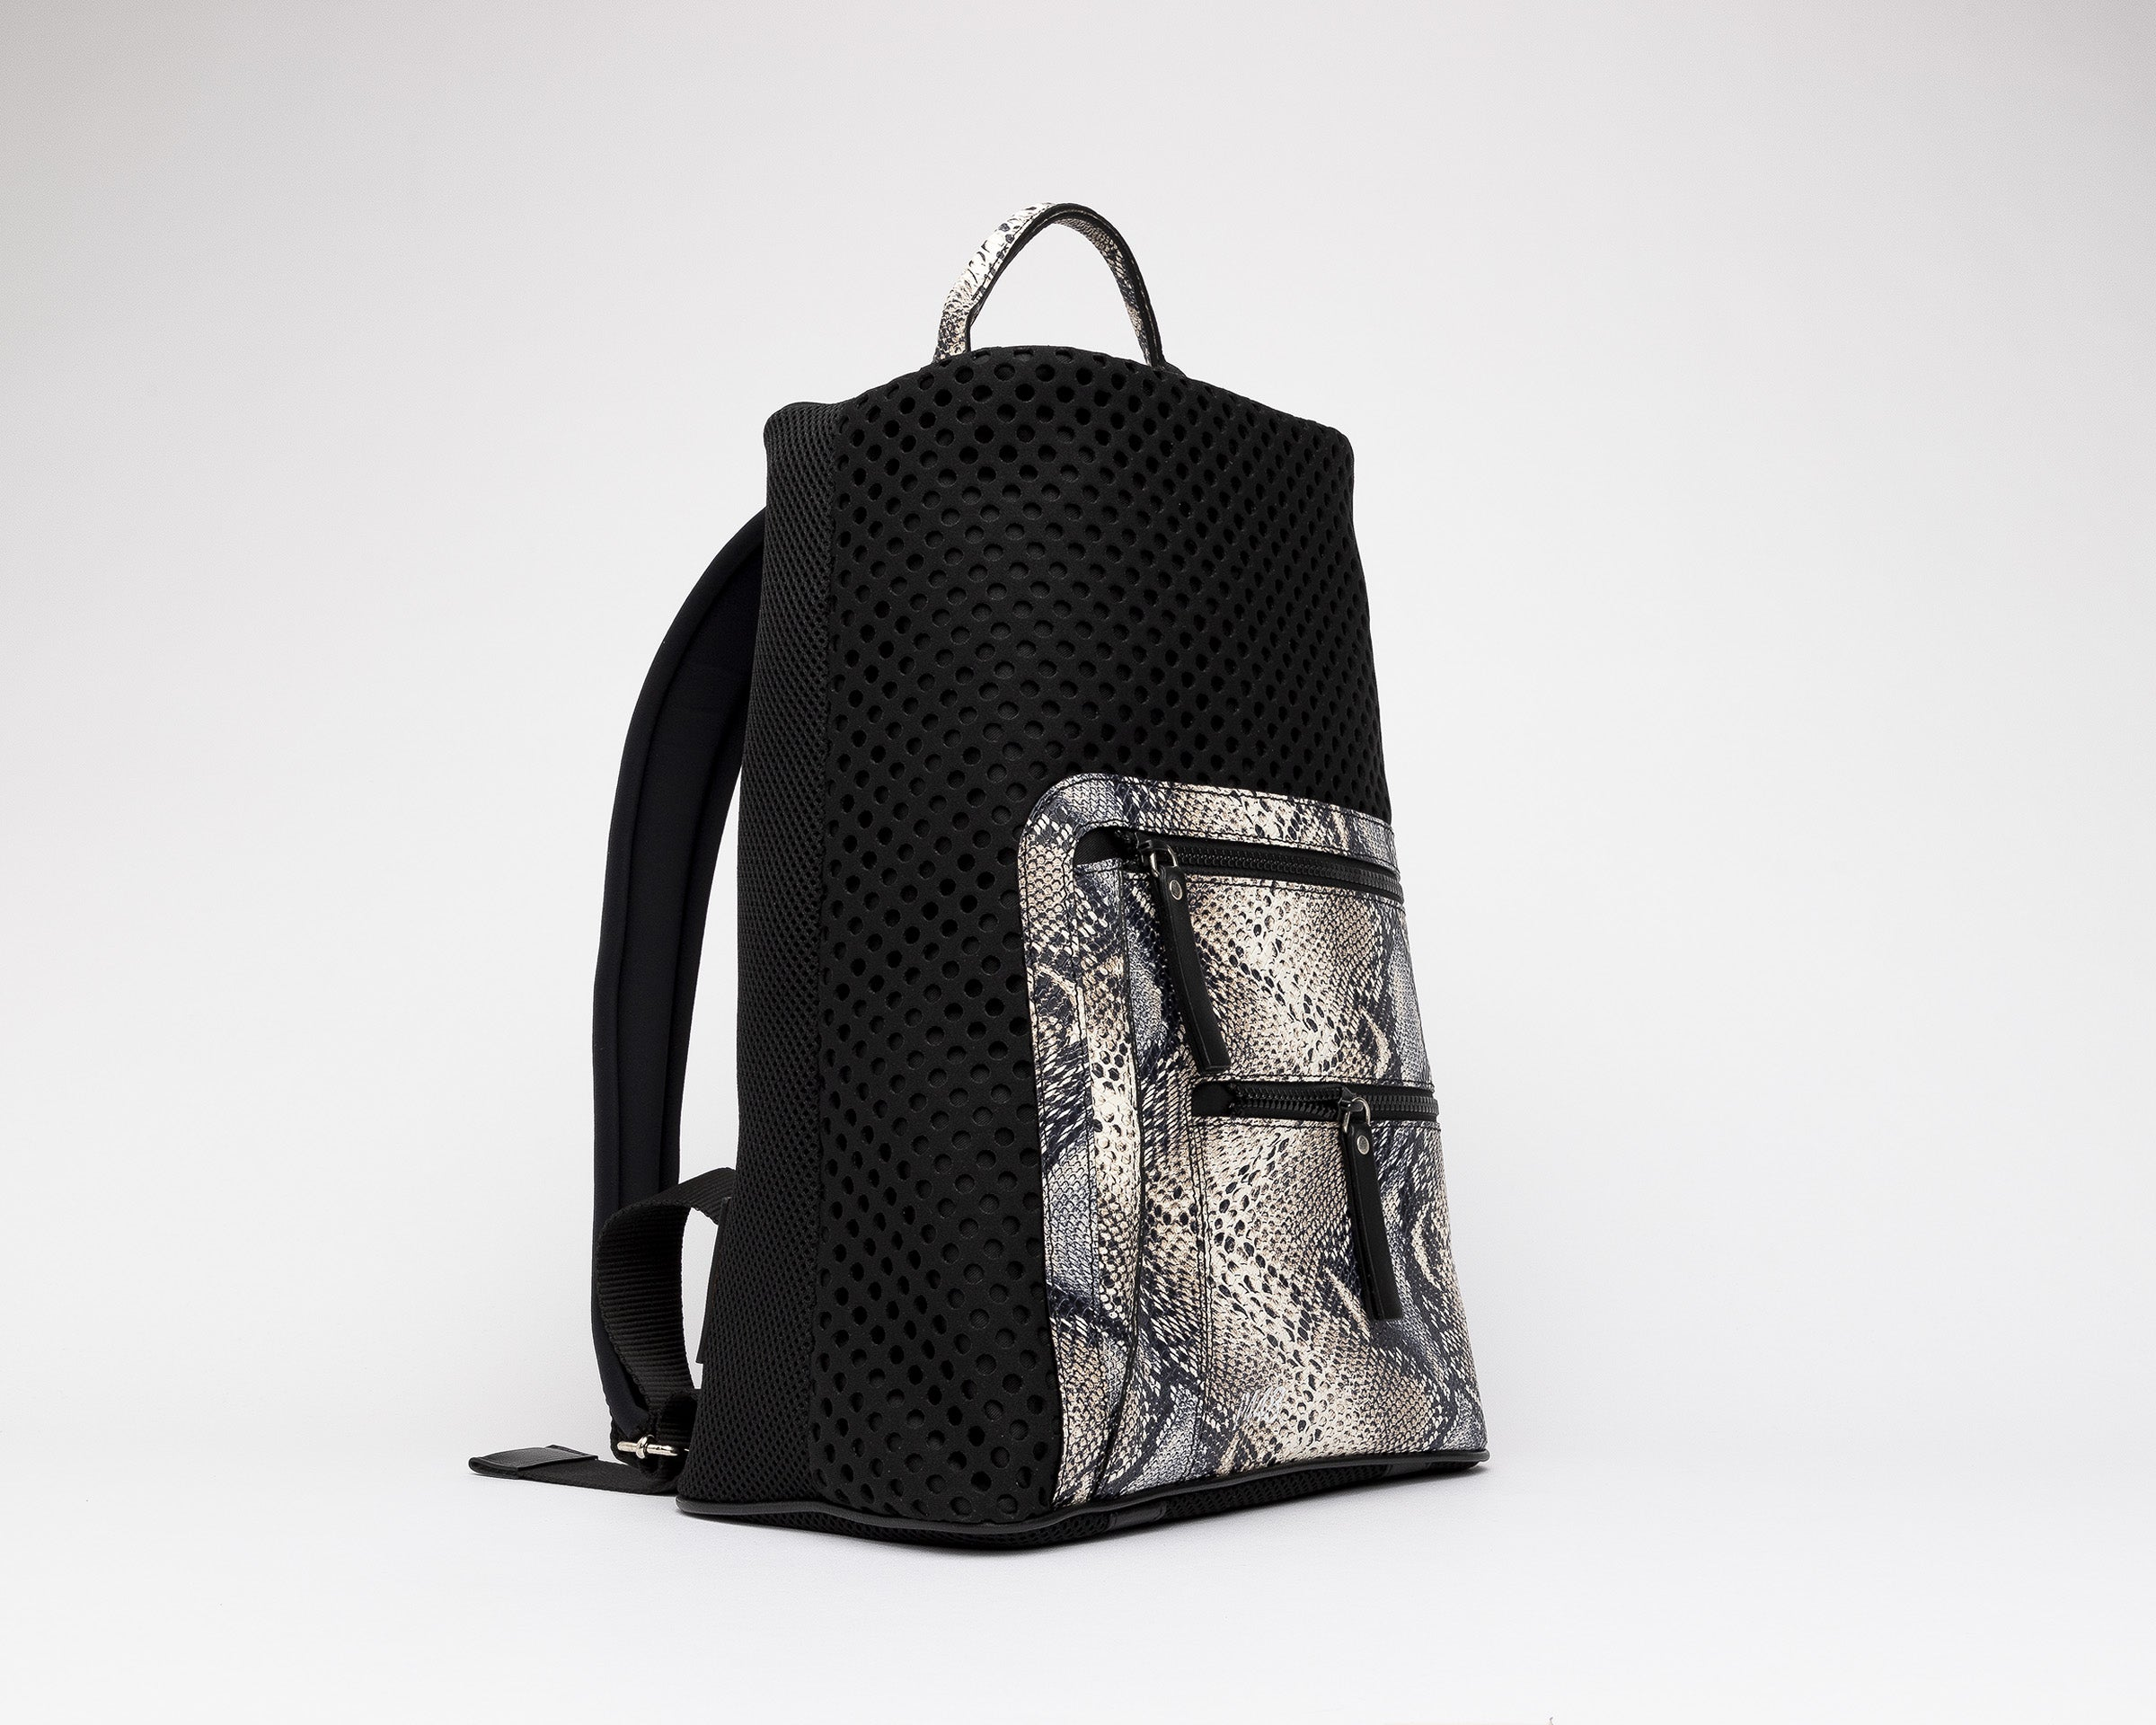 Bill Backpack in Twister Python - Side 1